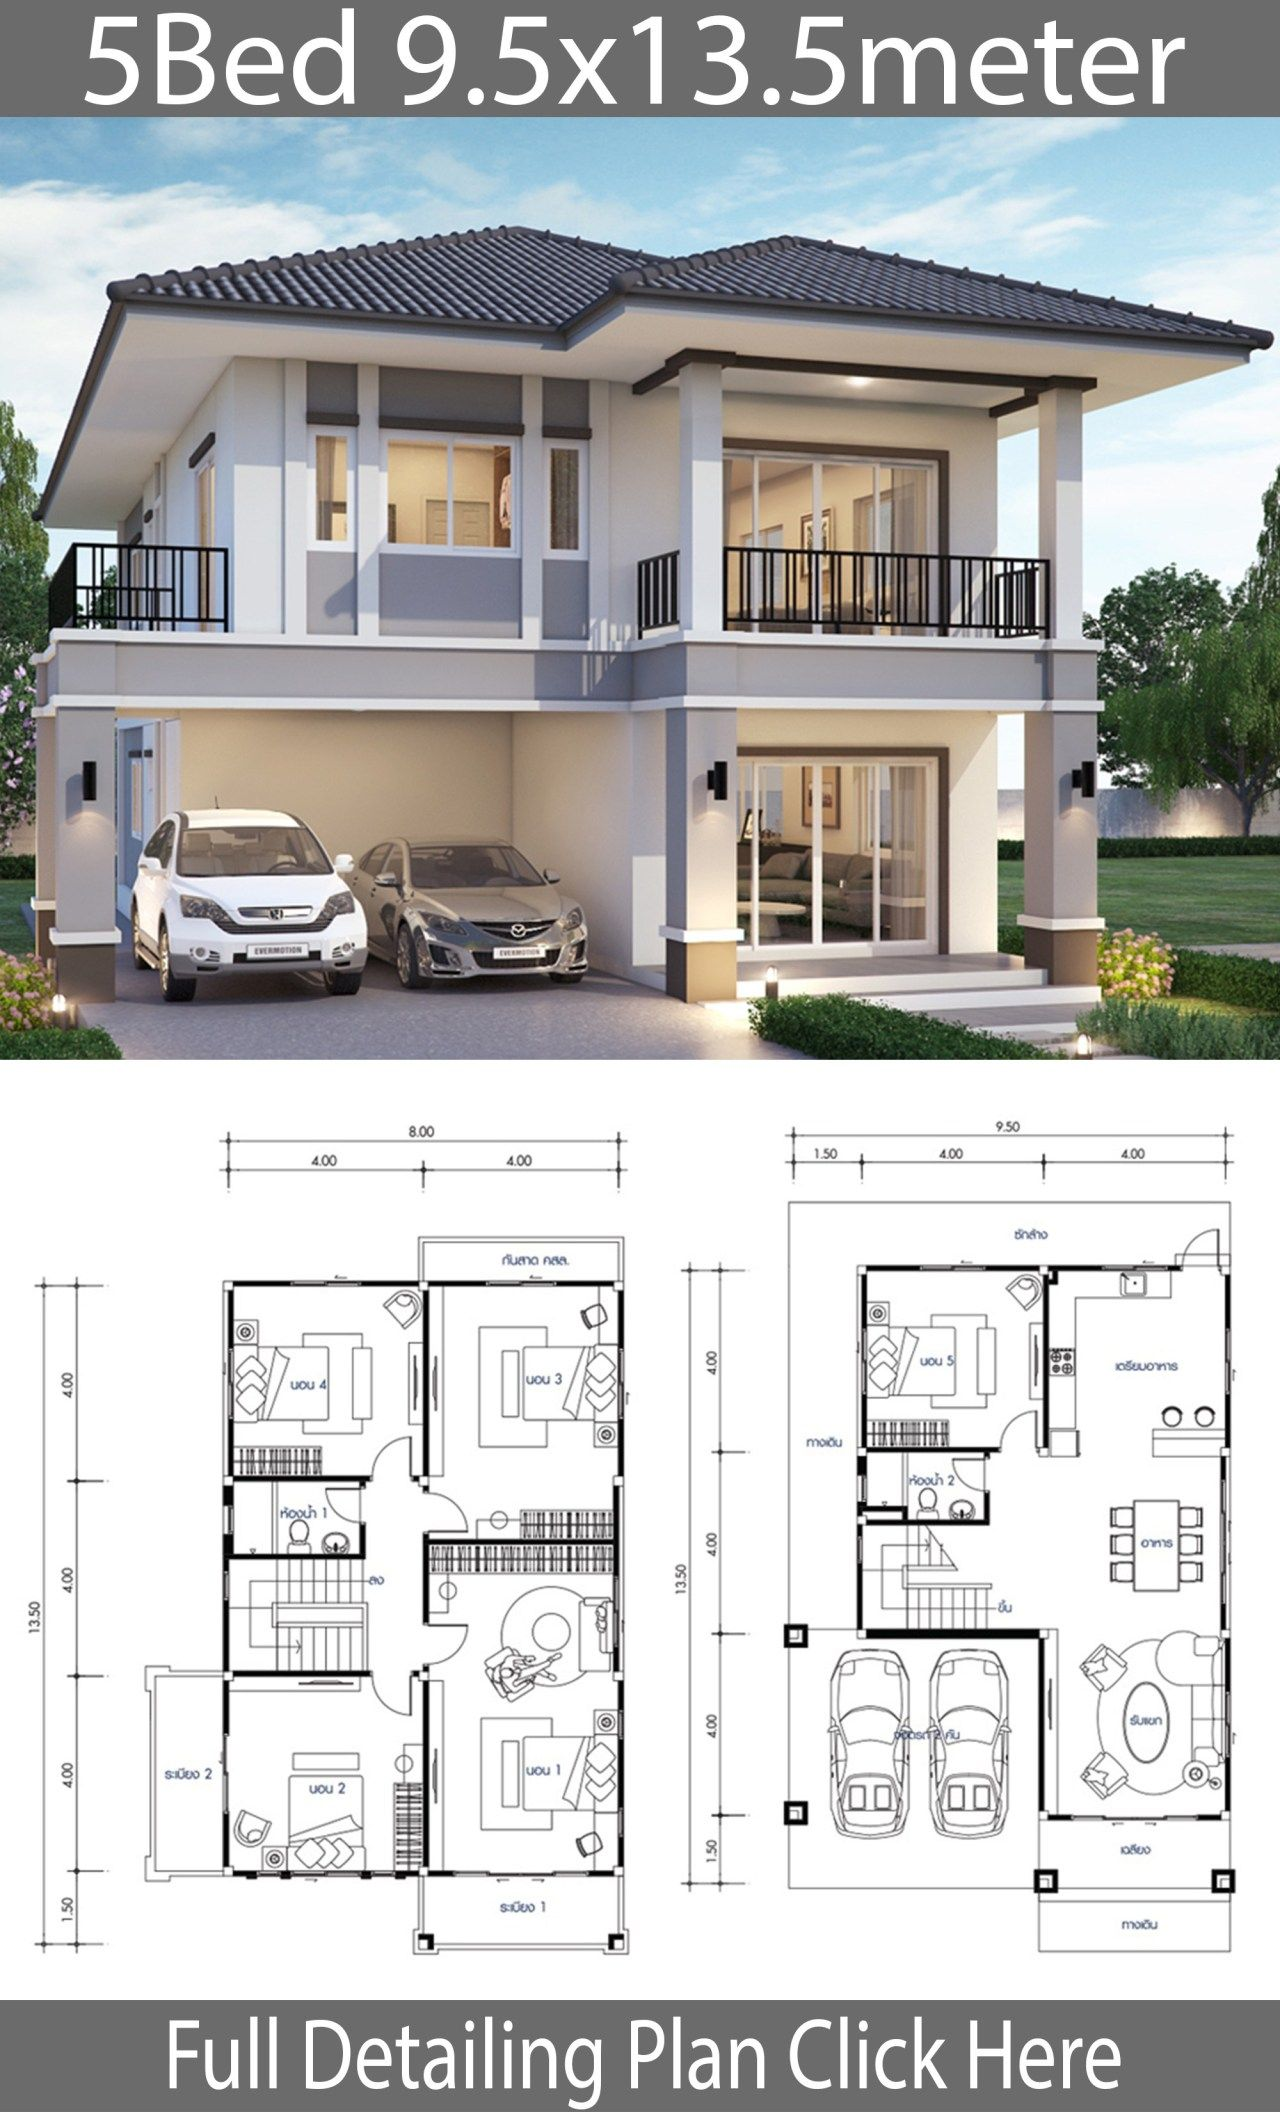 House Design 9 5x13 5m With 5 Bedrooms Home Ideas Duplex House Design Modern House Plans Model House Plan